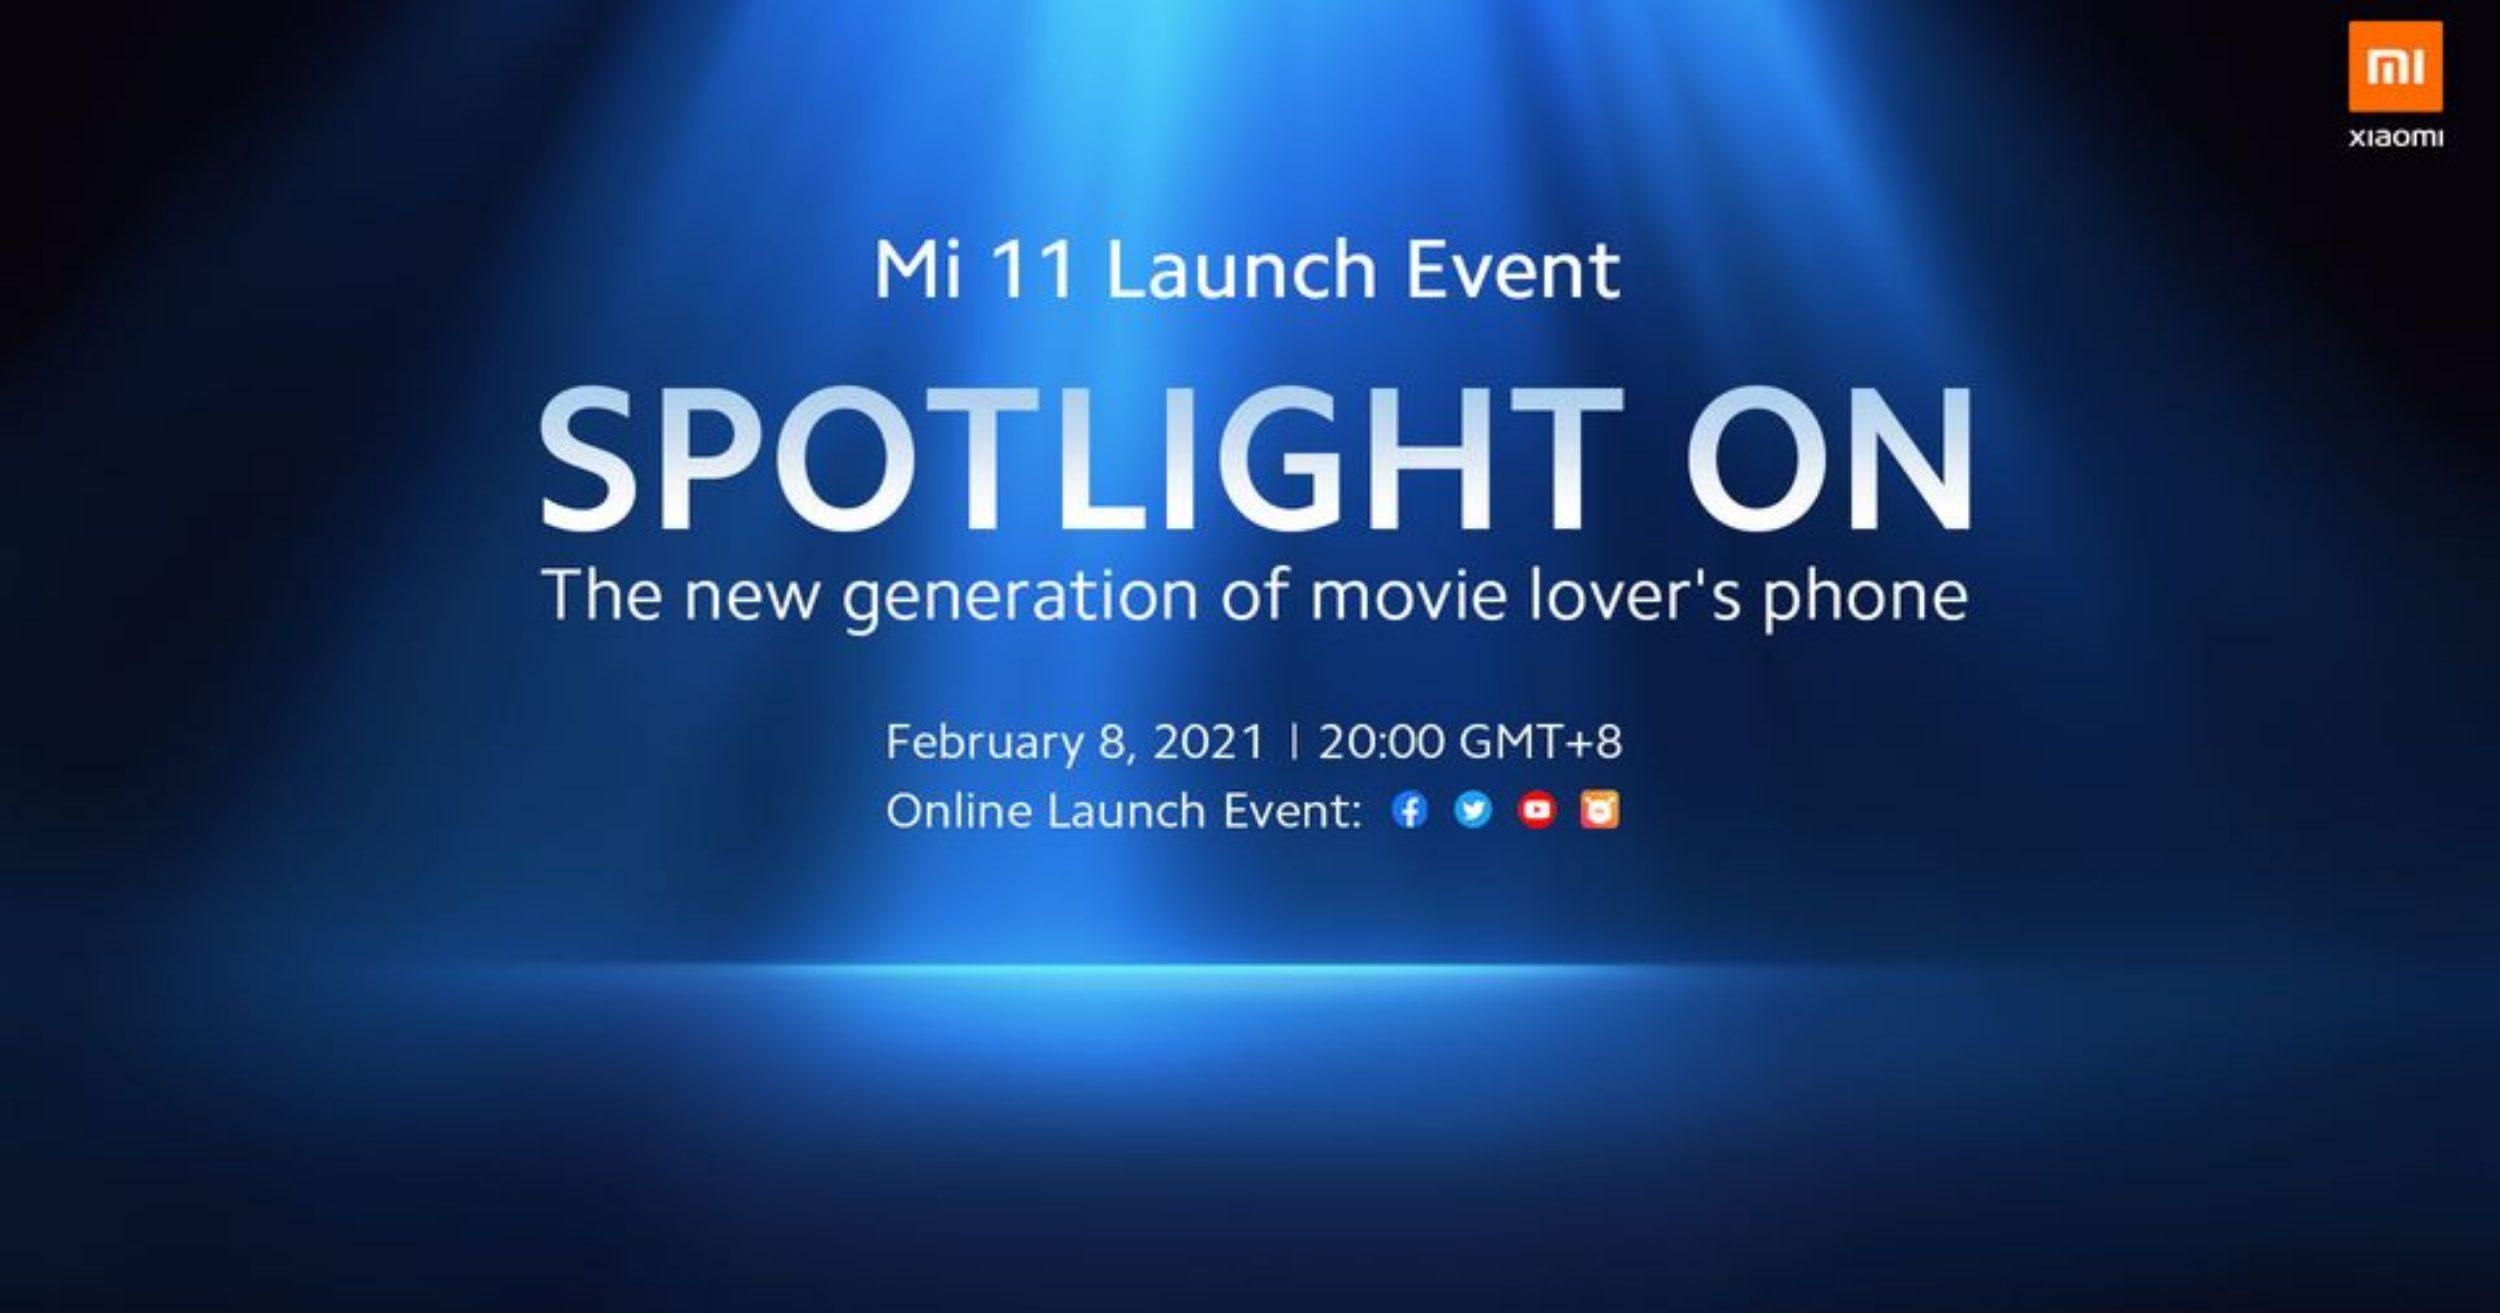 xiaomi-mi-11-going-global-on-february-10-mi-11-pro-with-120x-zoom-could-debut